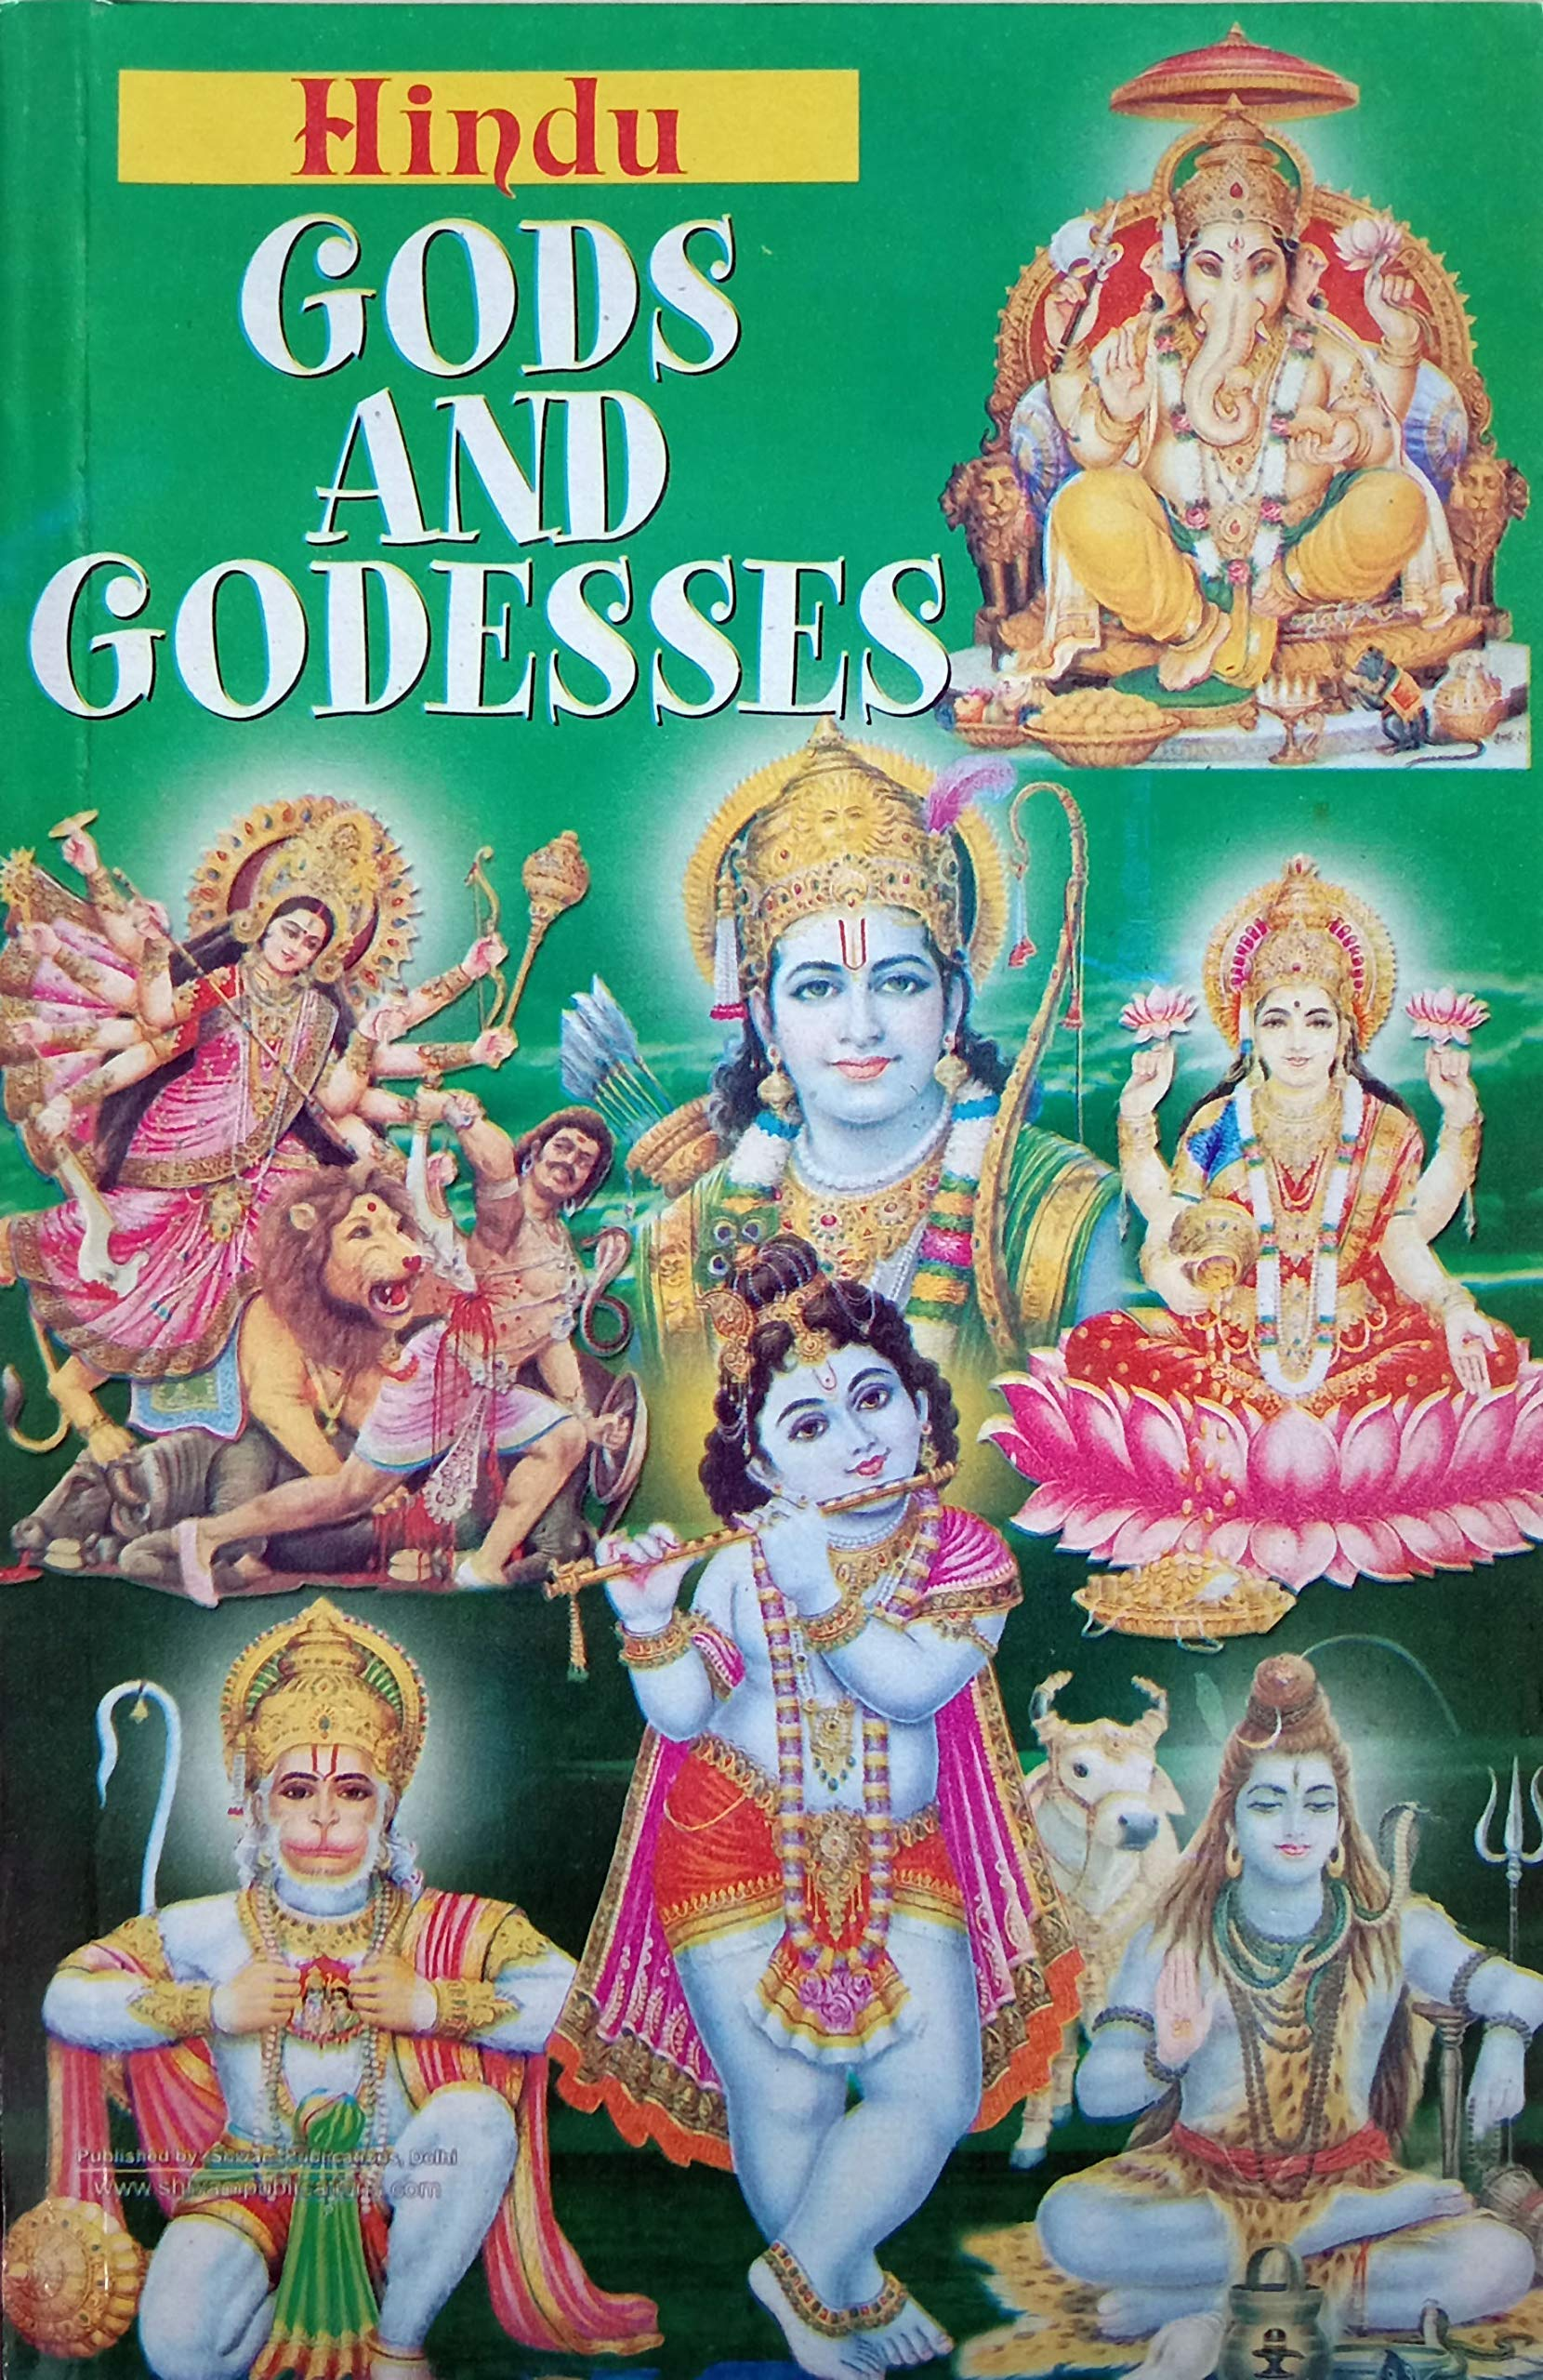 Annual Archana -Any one Deity of your choice for 52 weeks